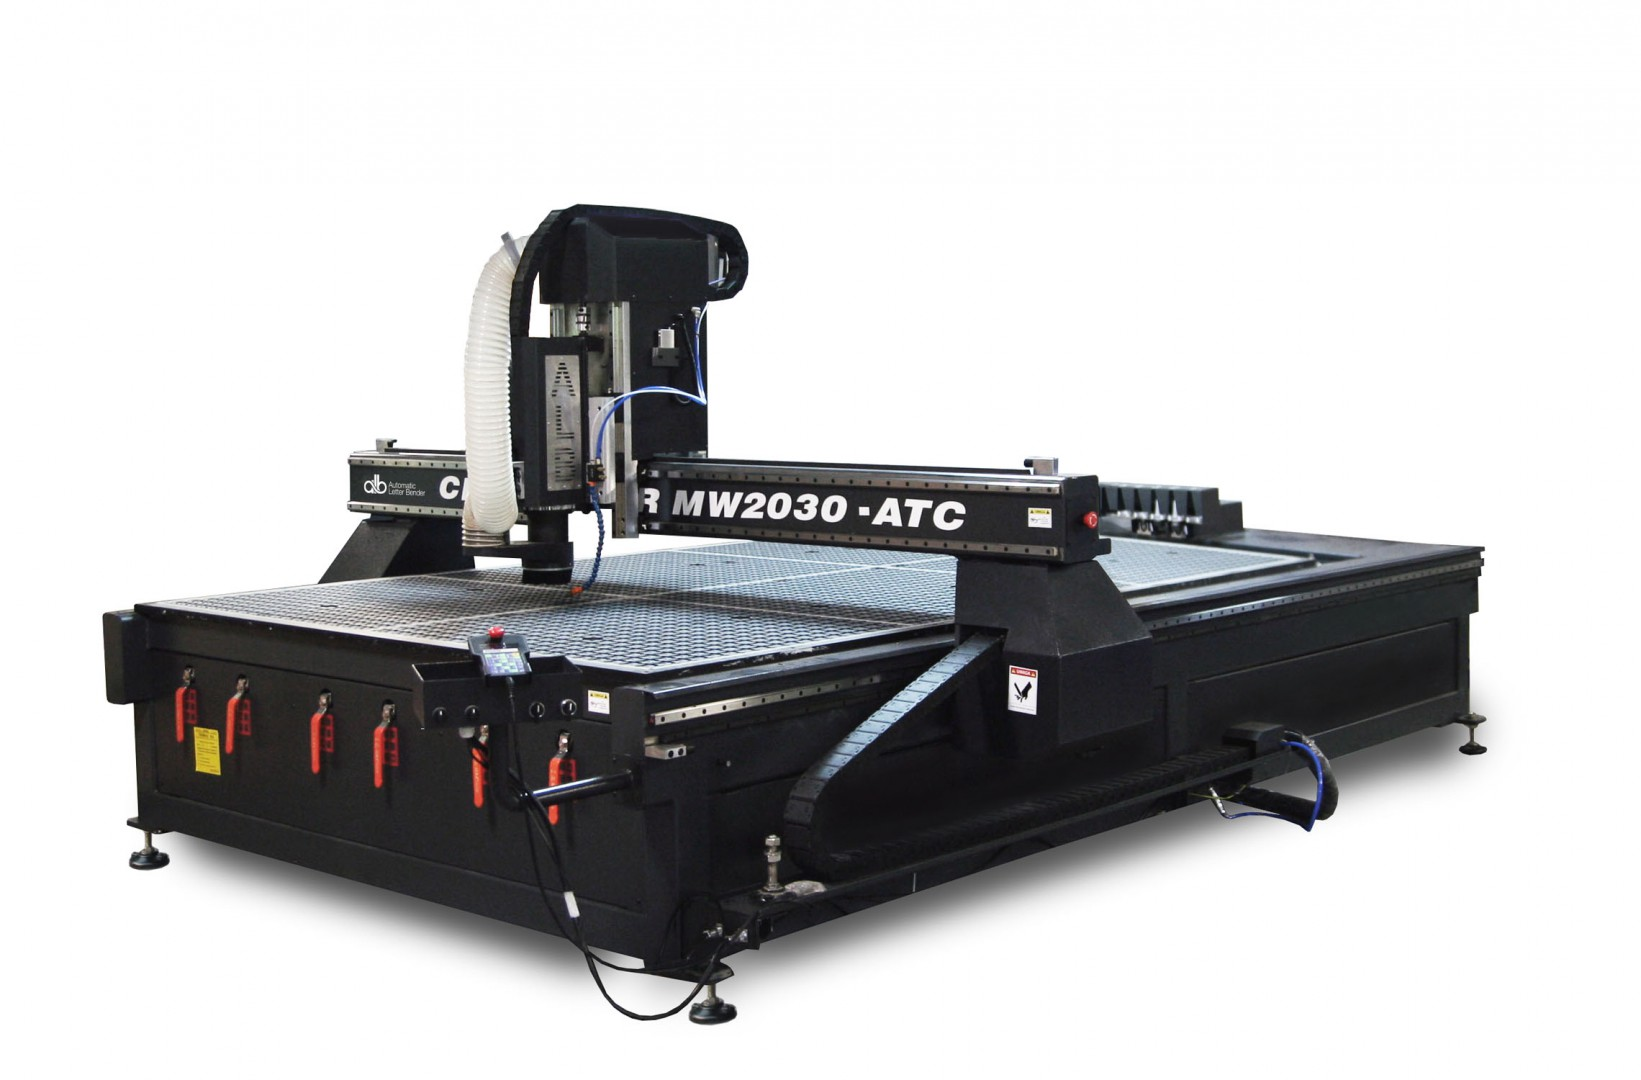 ALB-CNC ROUTER ATC (AutomaticTool Change). Dystrybutor: Automatic Letter Bender